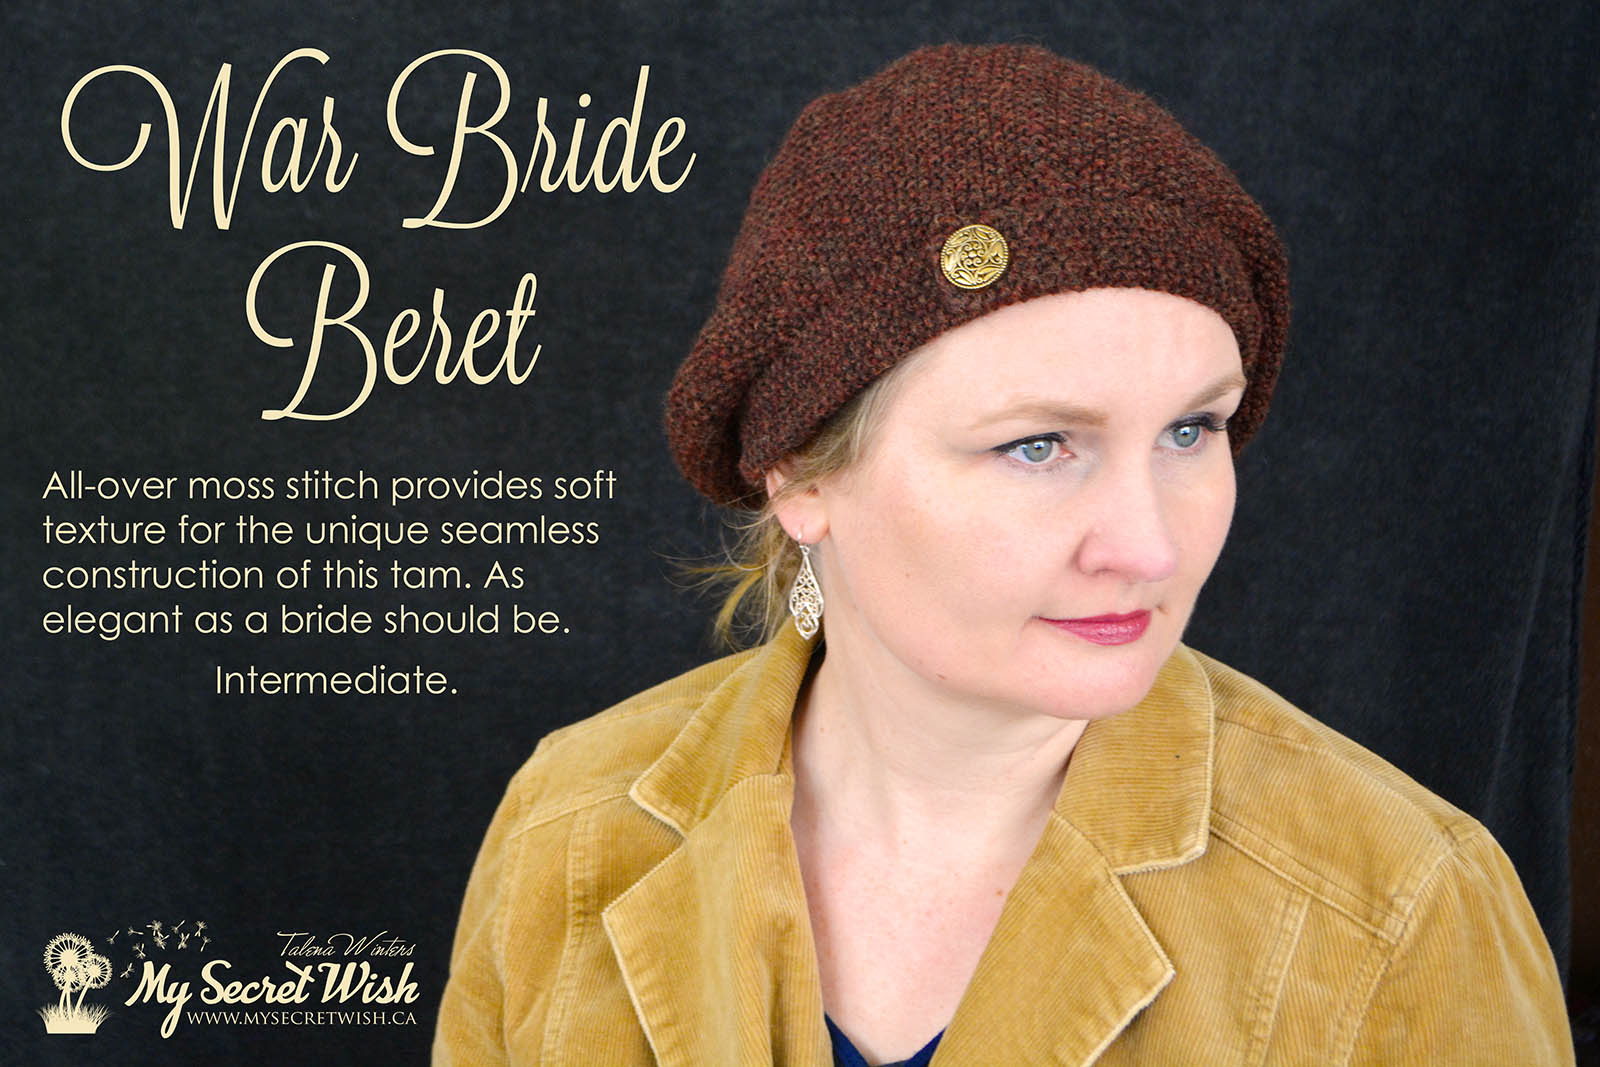 War Bride Beret knitting pattern by Talena Winters. Effortless, elegant chic for toddlers through Ladies' Large.